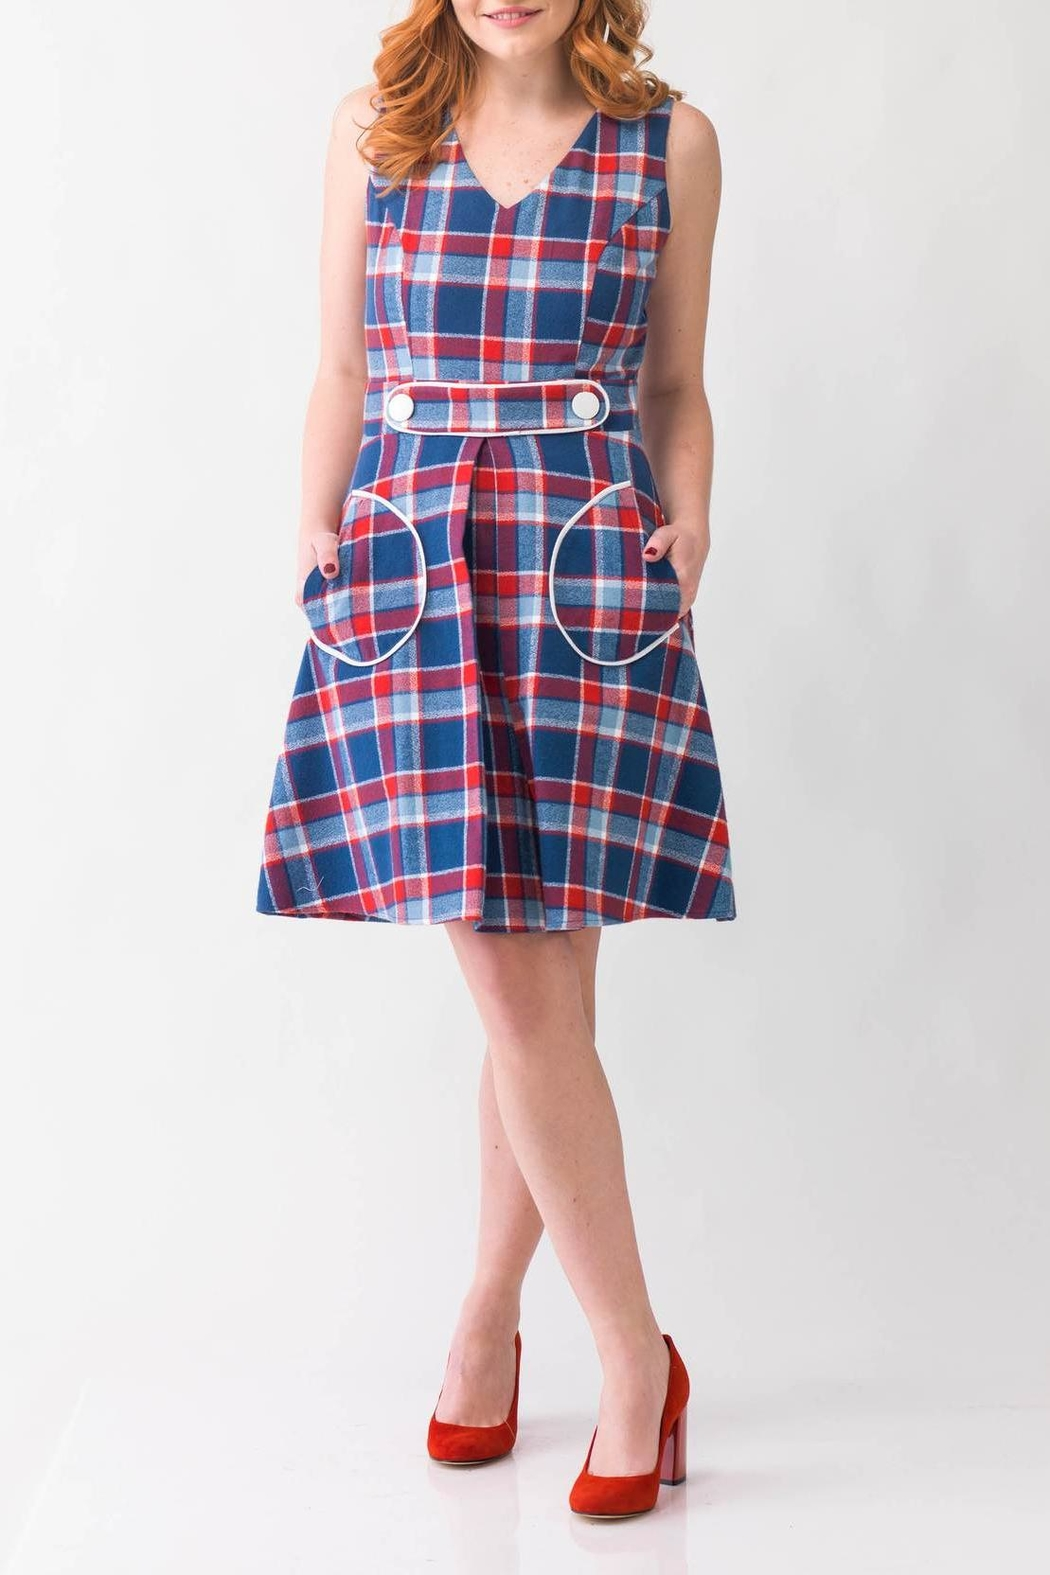 Smak Parlour Plaid Retro Dress - Main Image